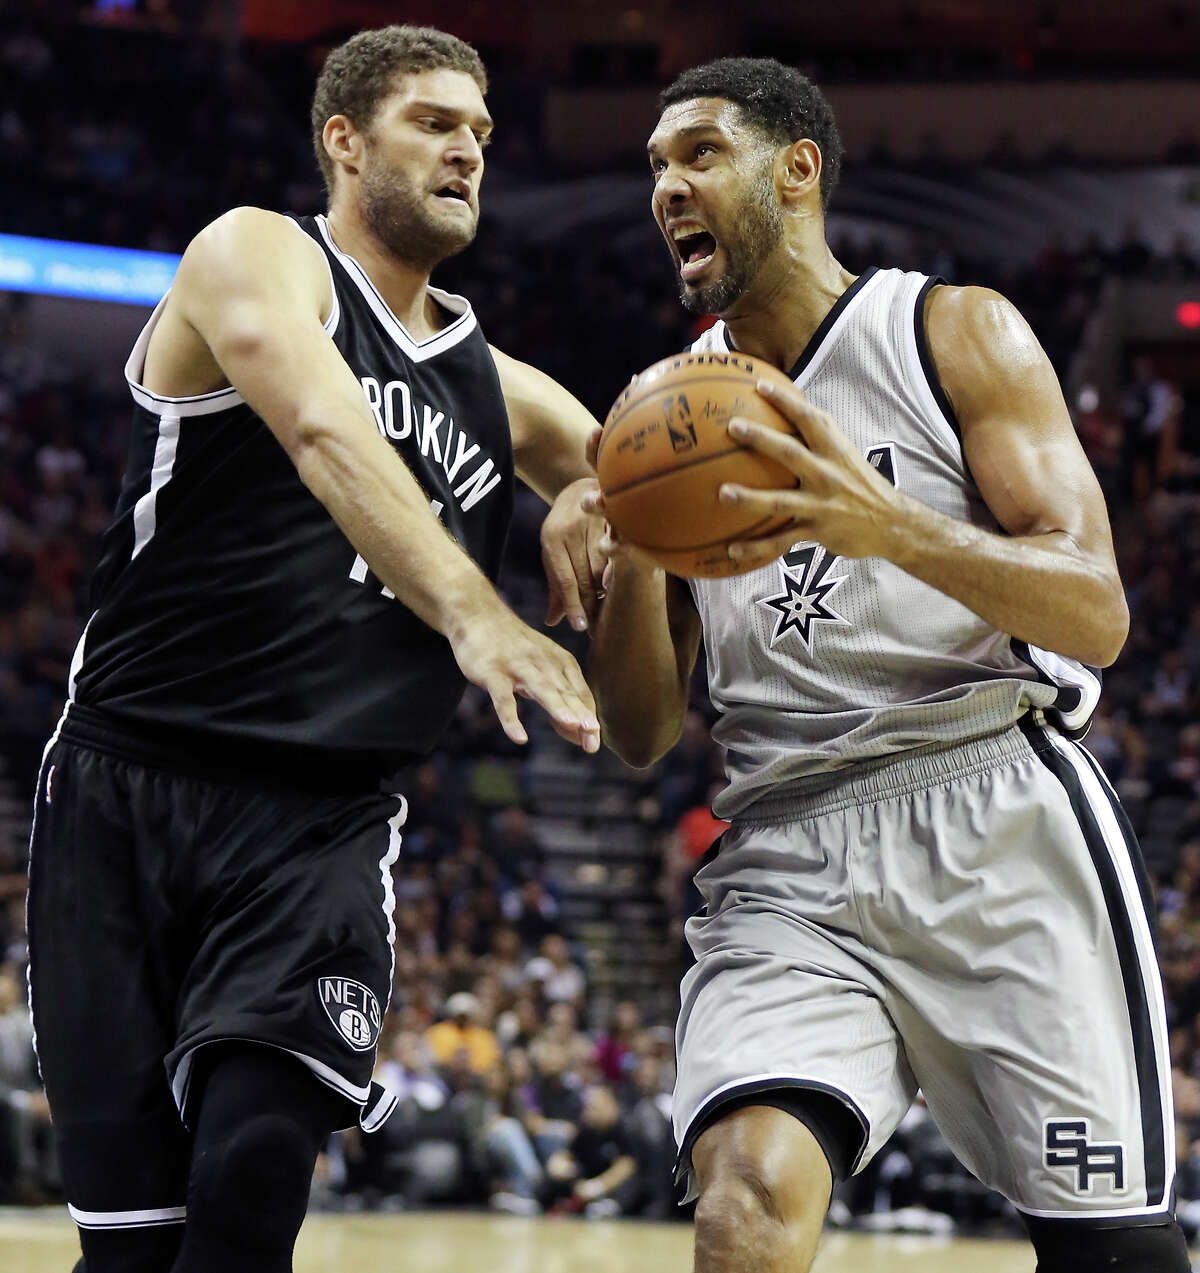 San Antonio Spurs' Tim Duncan drives around Brooklyn Nets' Brook Lopez during first half action Saturday Nov. 22, 2014 at the AT&T Center.